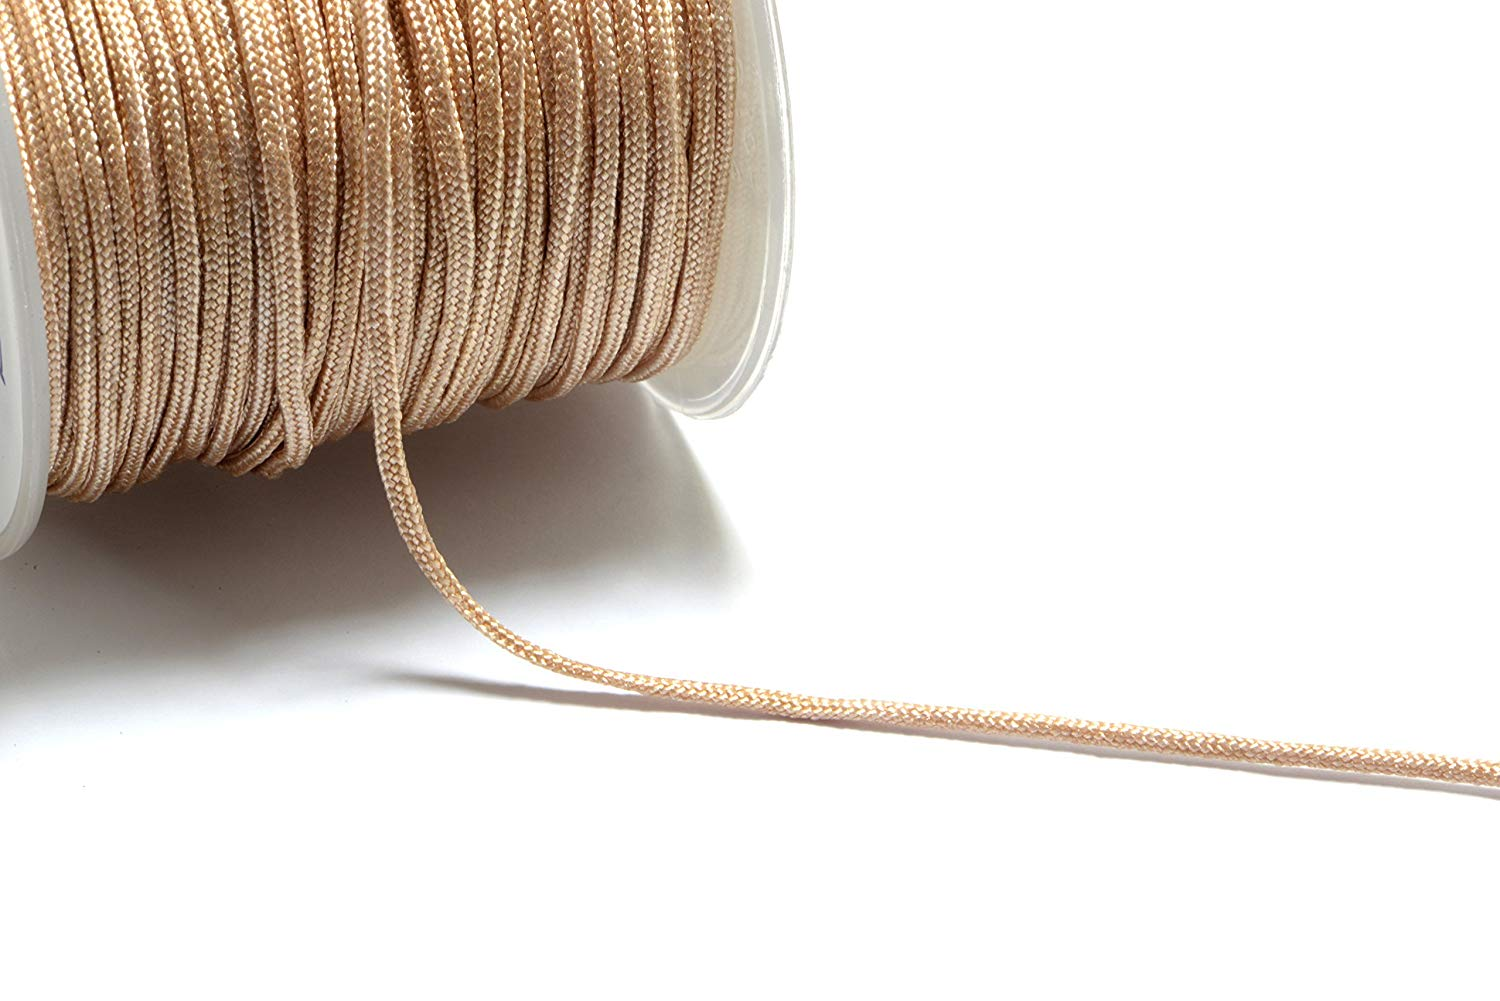 30m (98.4ft) (32.8 yards) 1.5mm Nylon Cords in Champagne Gold, Chinese Knotting Cord, Spooled, Beading String for Beads #SD-S7757